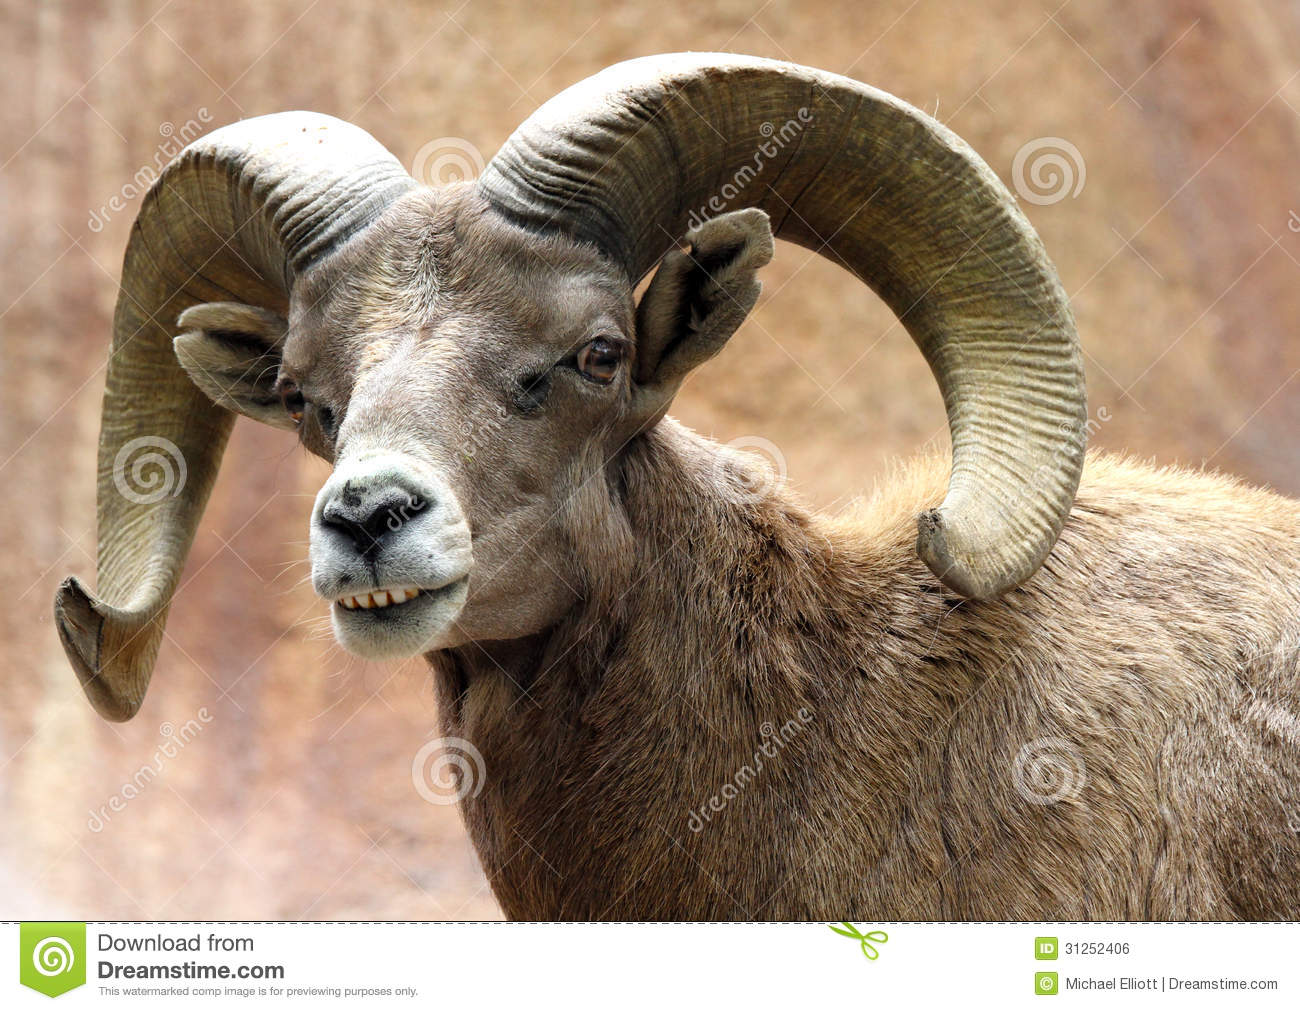 Male Desert Bighorn Sheep Displaying Huge Curved Horns And Teeth